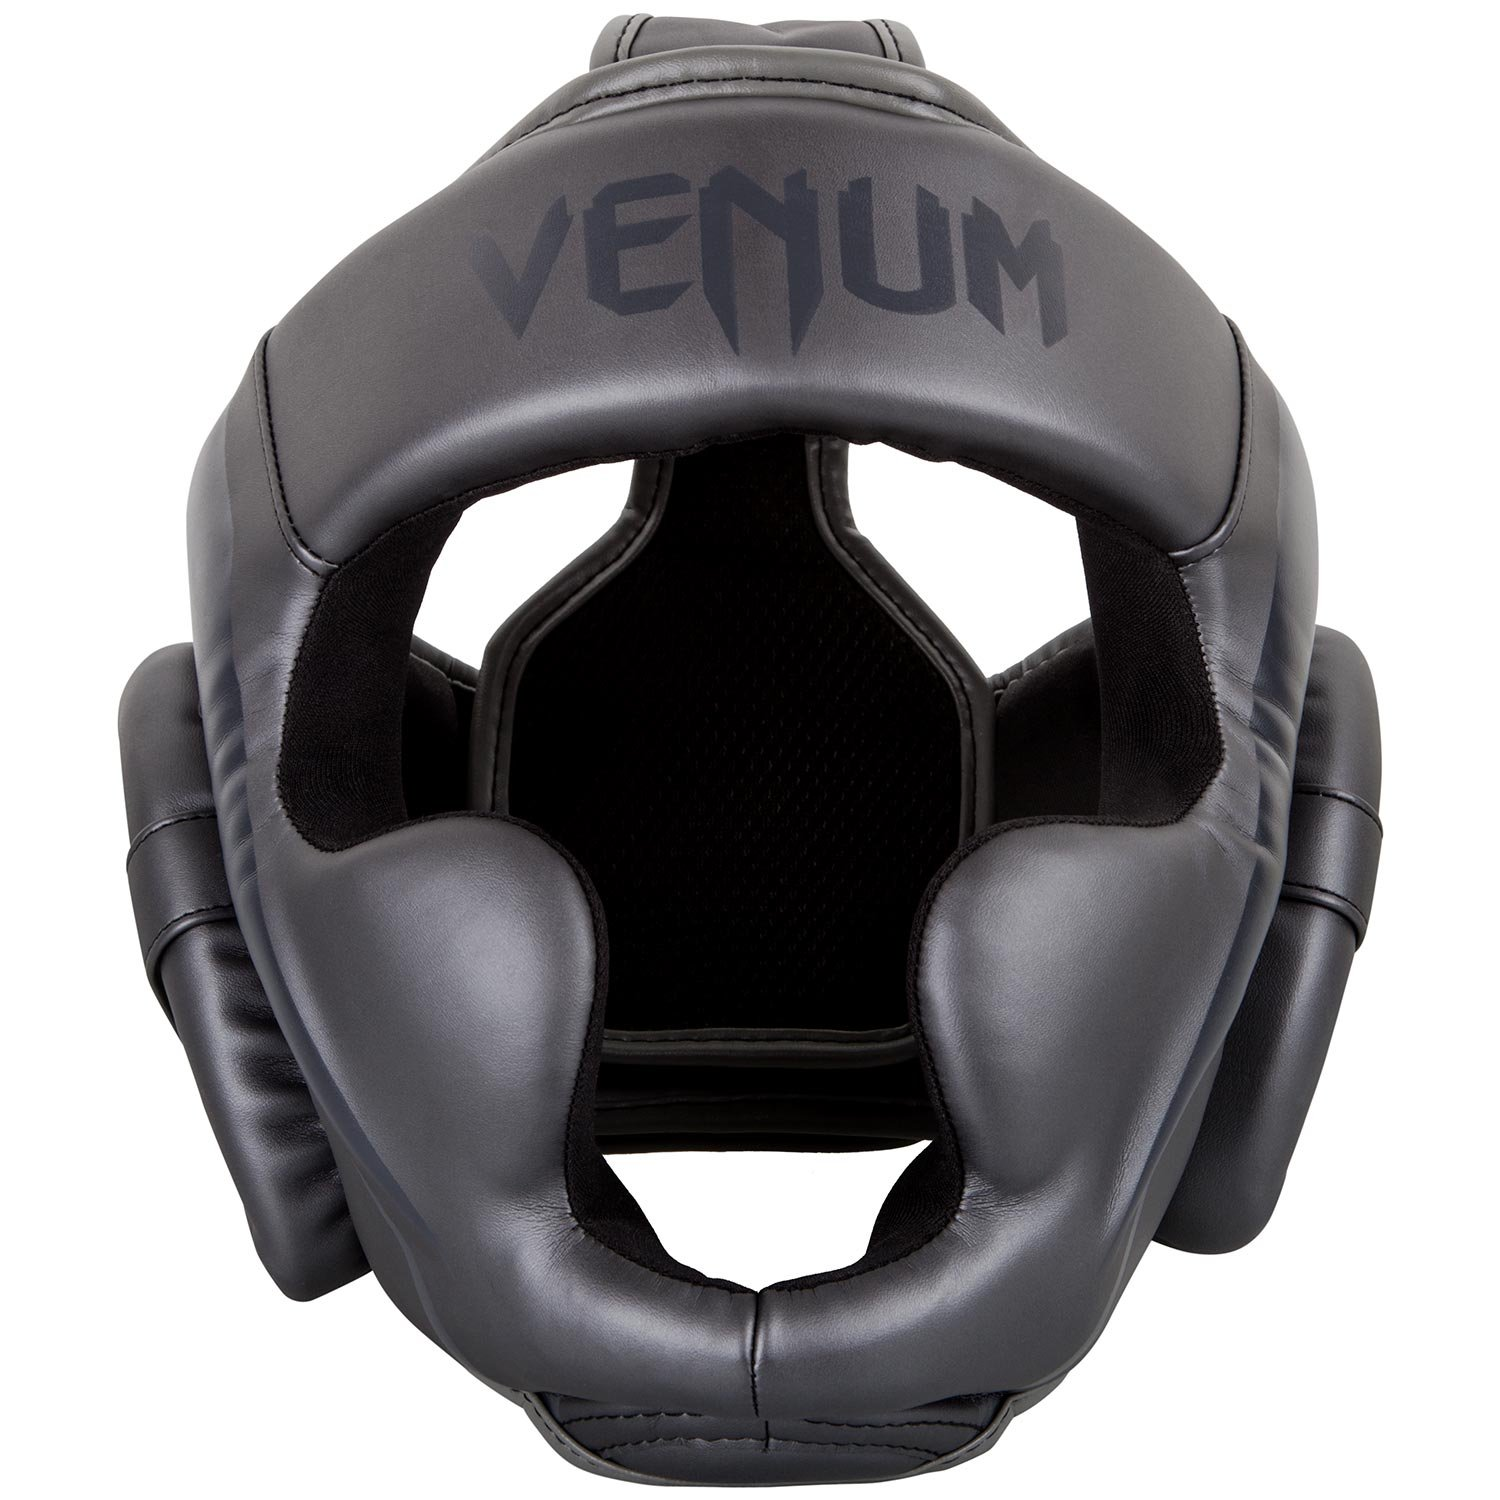 venum elite casco adulto unisex